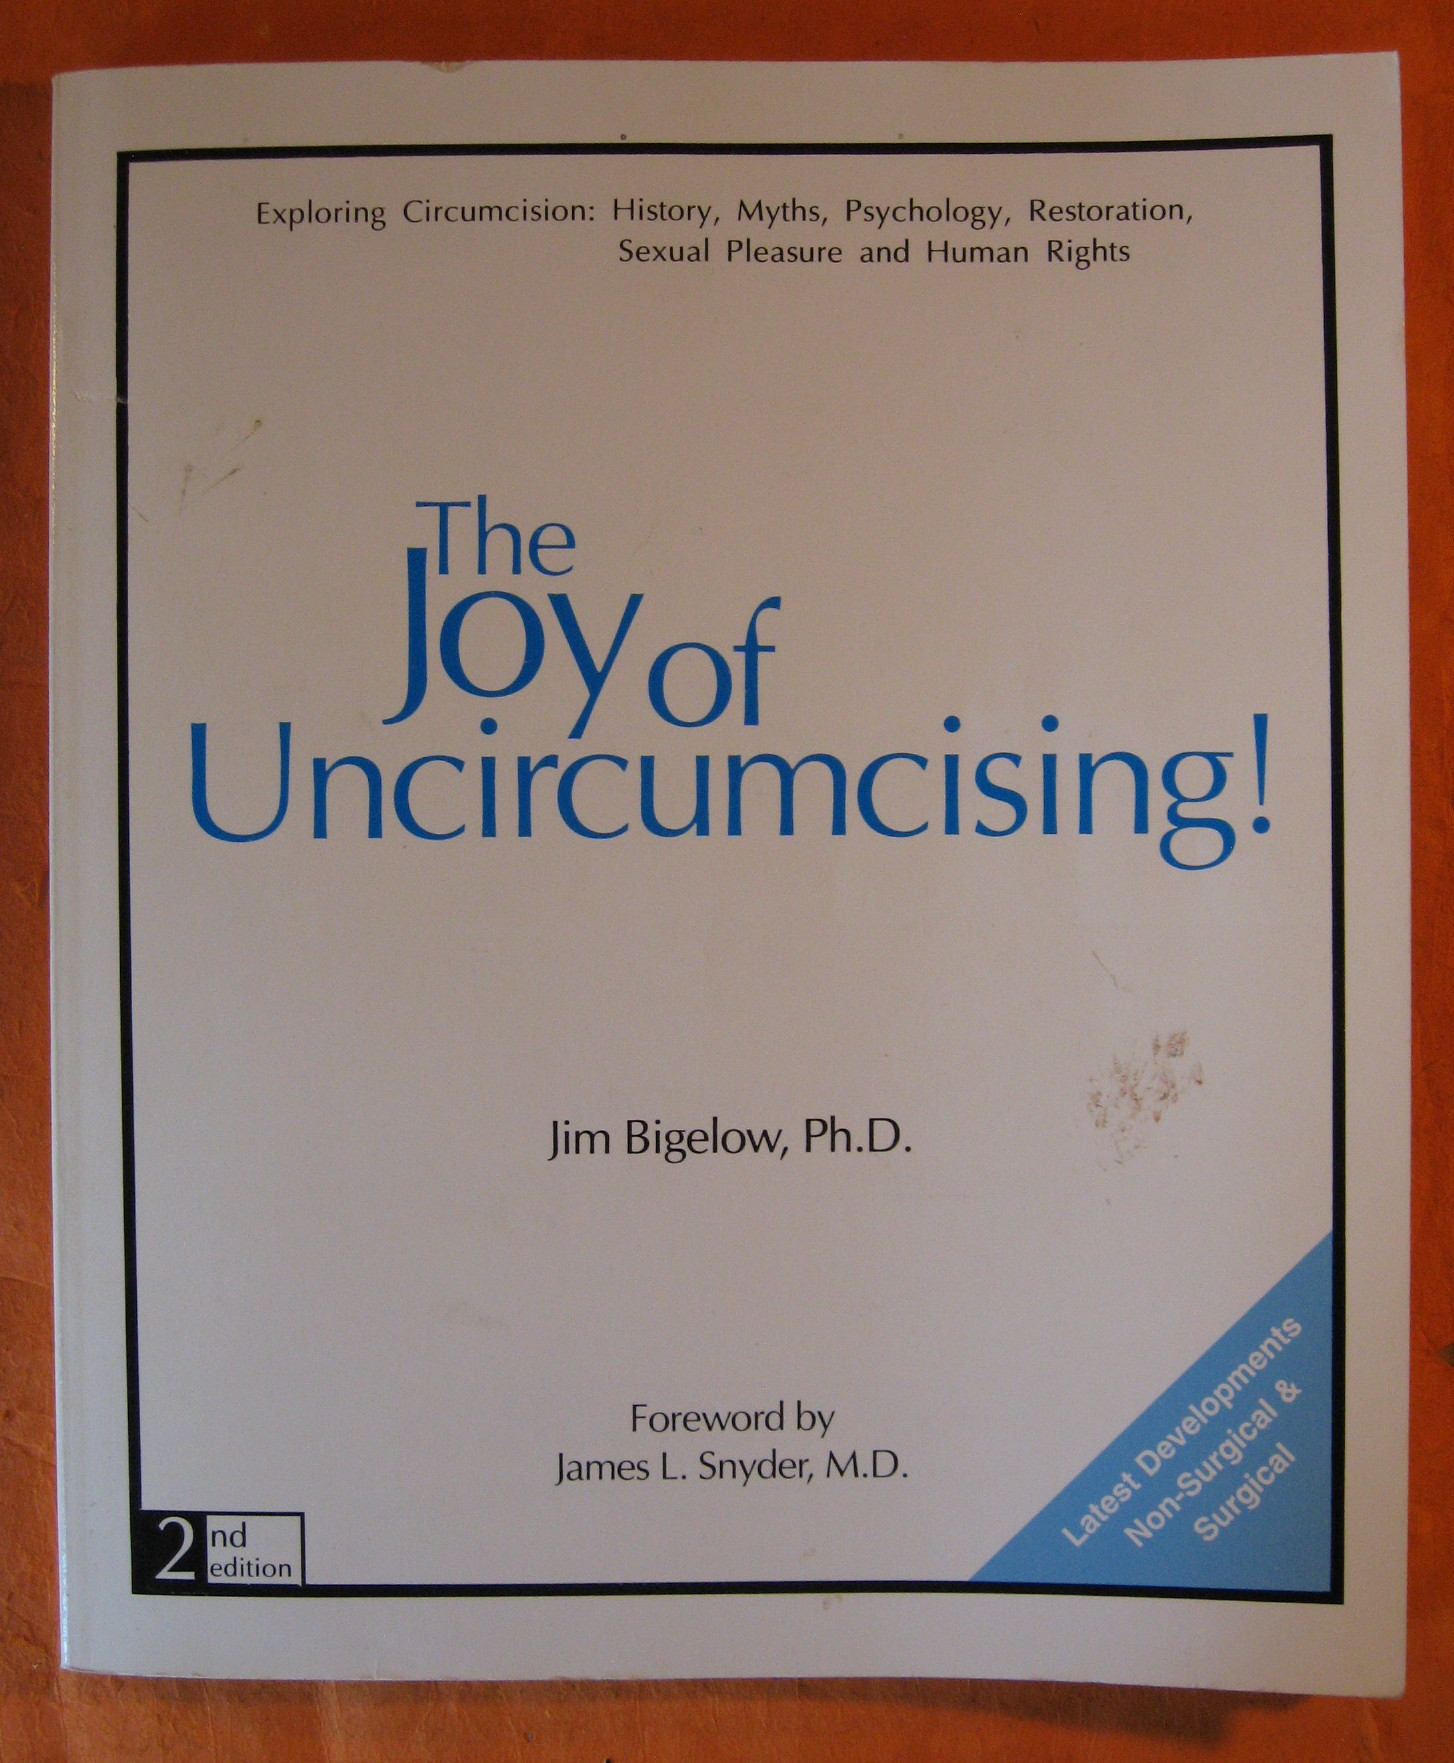 The Joy of Uncircumcising!  Exploring Circumcision:  History, Myths, Psychology, Restoration, Sexual Pleasure and Human Rights, Bigelow, Jim